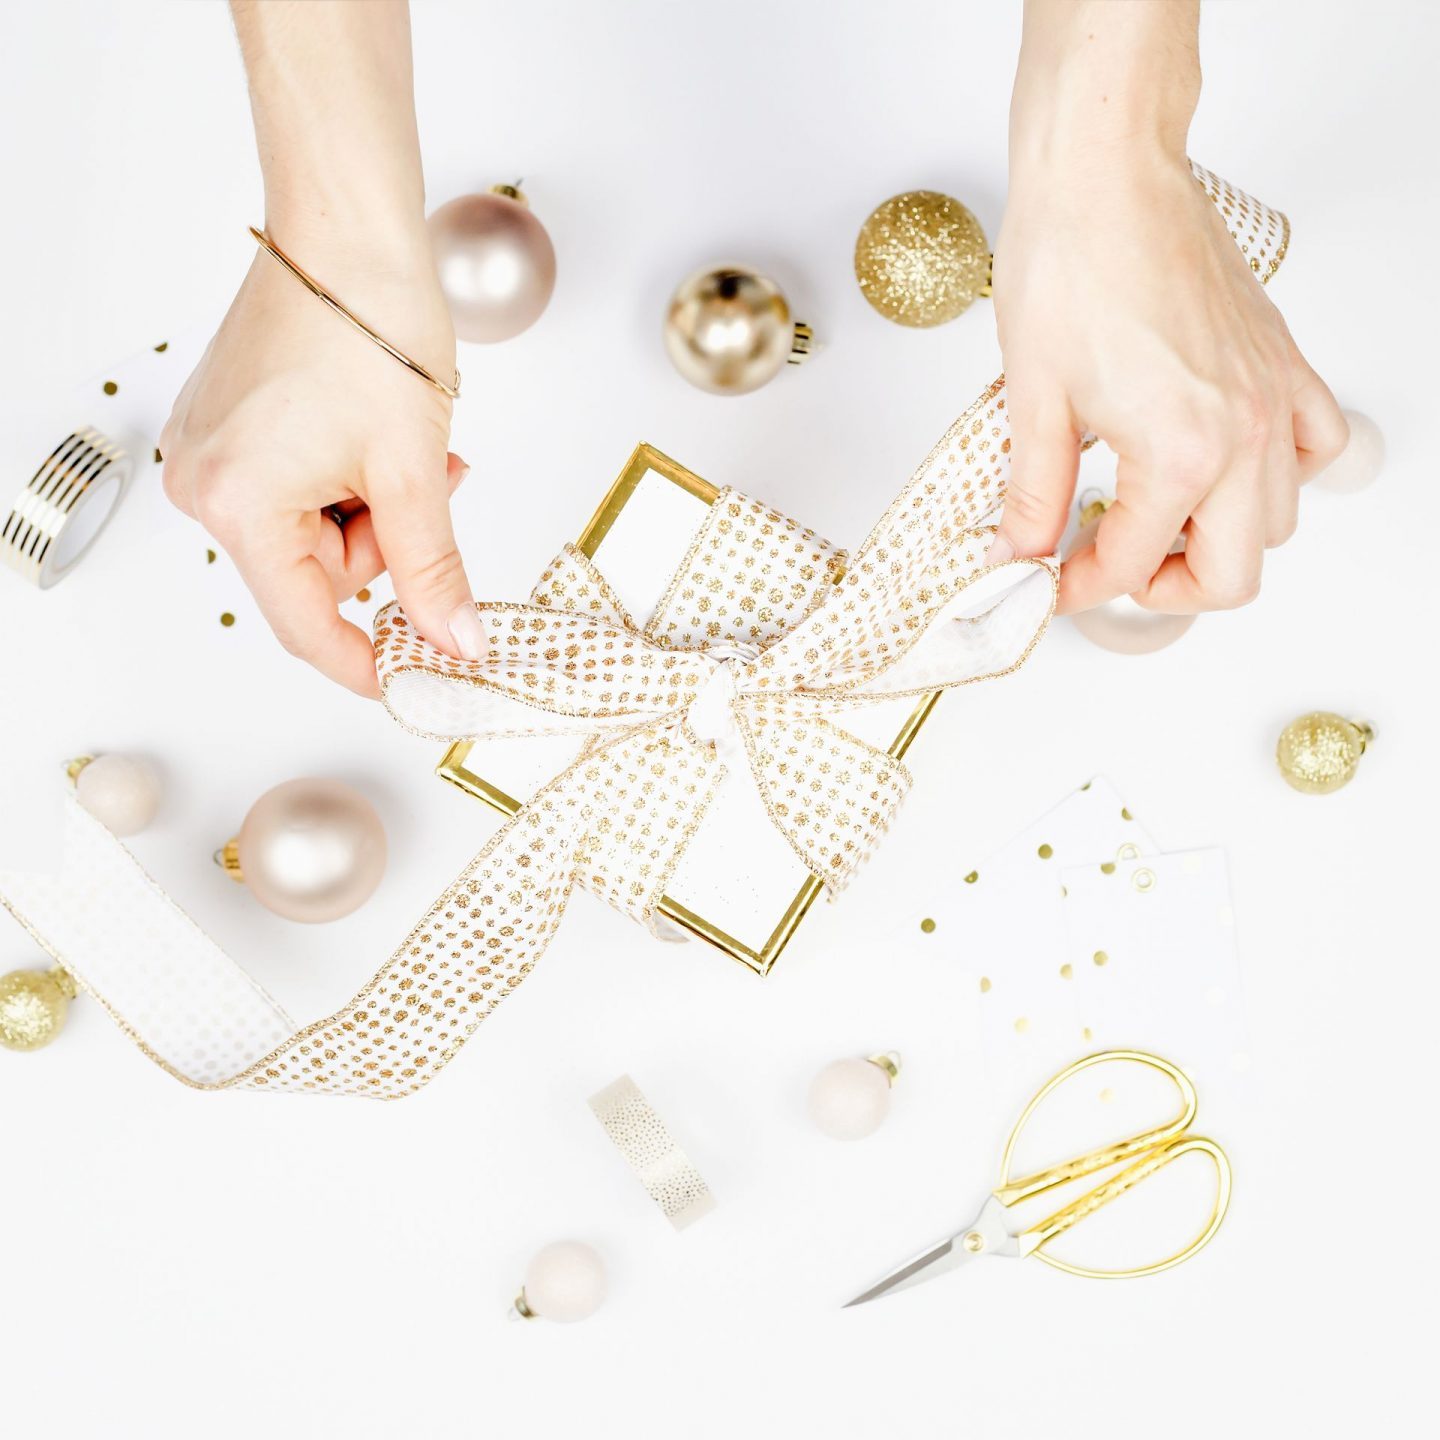 Gift Guide for Women // Affordable Gifts for Her // Gifts for Women // Stocking Stuffers for Women // Gifts Under $100 for Her // Gifts Under $50 for Her | Beauty With Lily